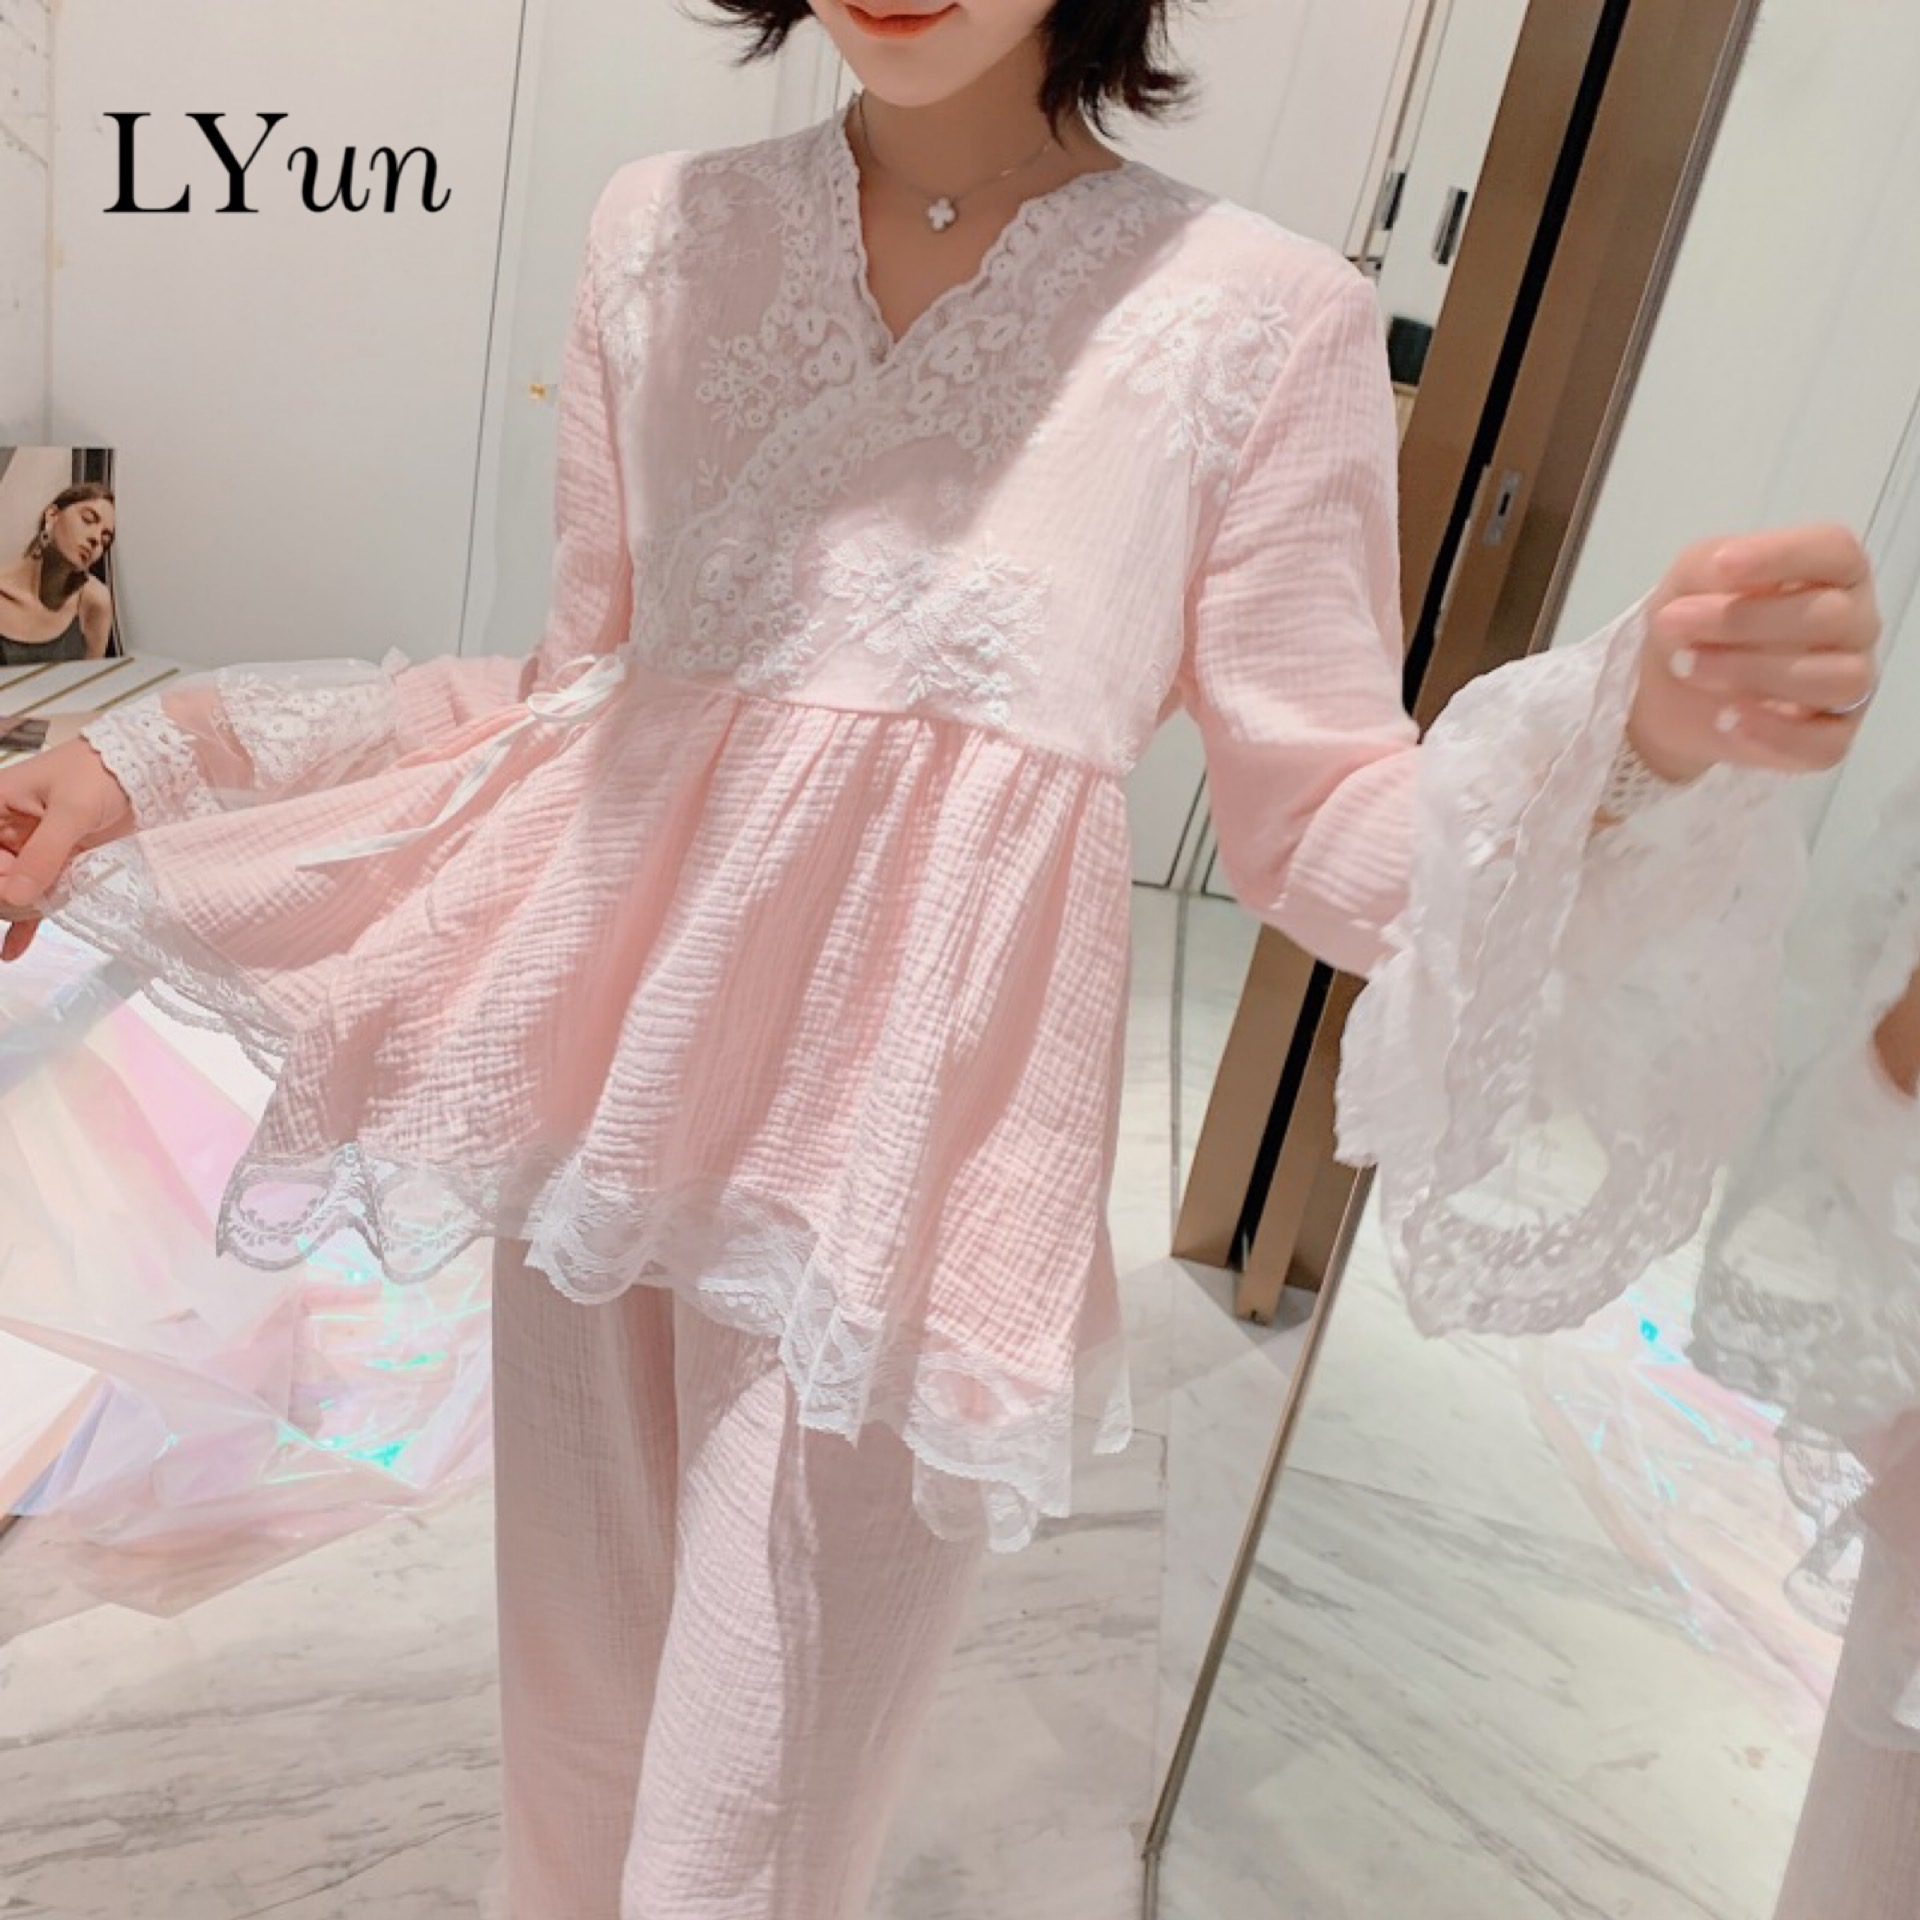 LY Spring And Autumn New Korean Version Of Cotton Gauze Women's Court Pajamas Set Cute Chinese Style Plus Size Home Service